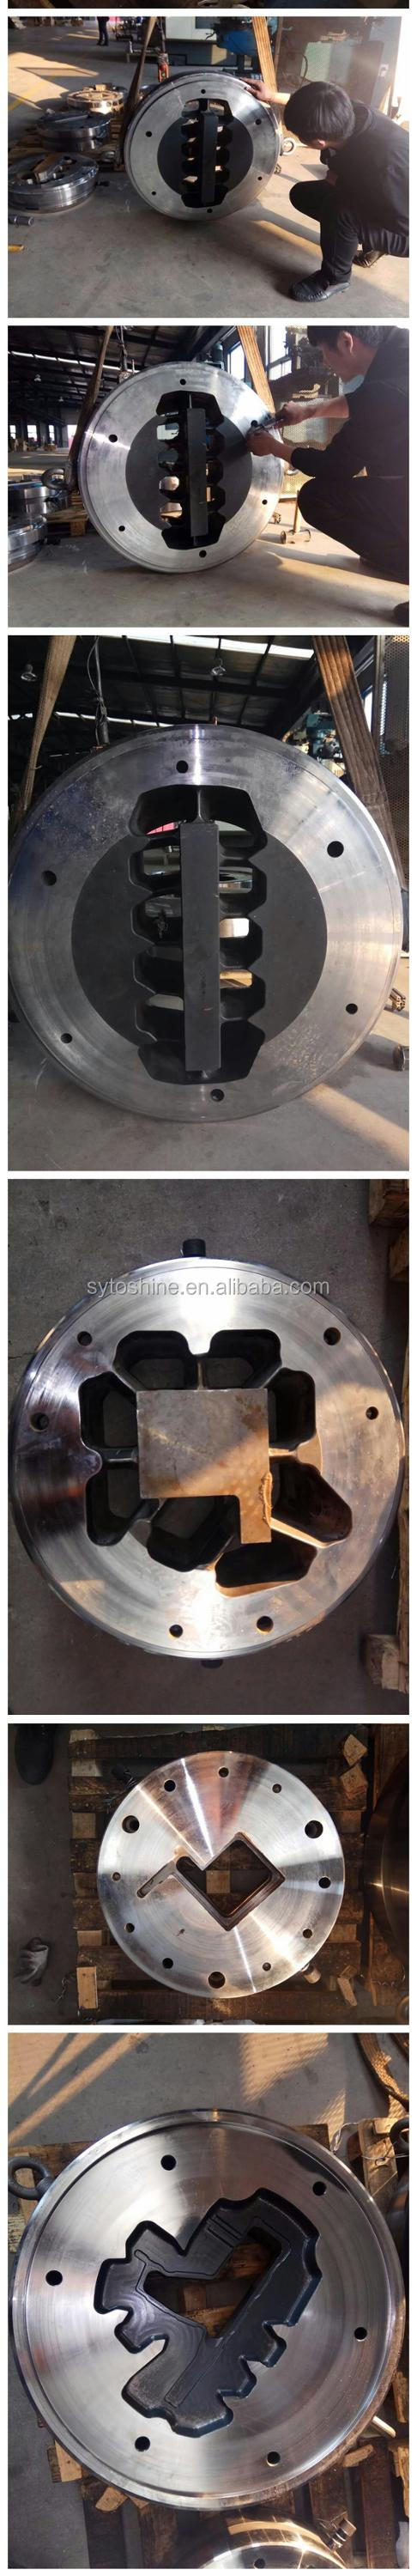 Hot Extrusion Mould / Dies Used for Aluminum Profile